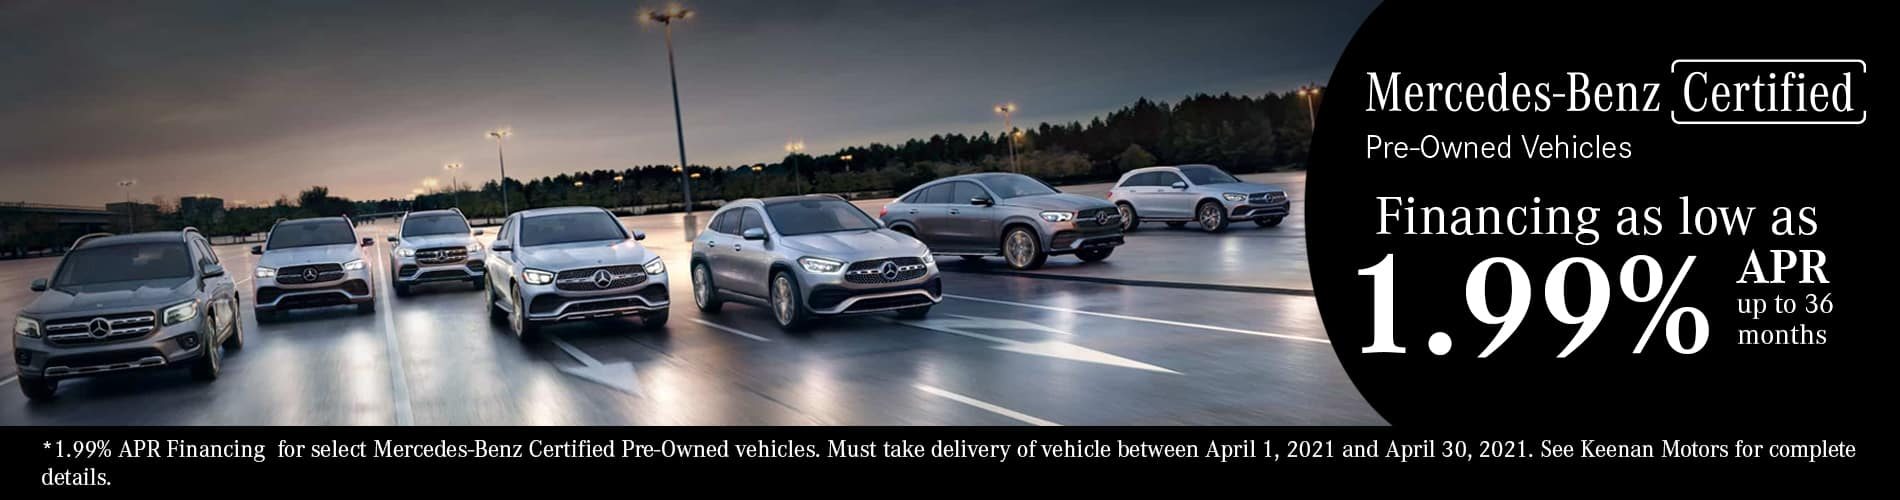 Certified Pre-Owned By Mercedes-Benz Special Financing at Keenan Motors